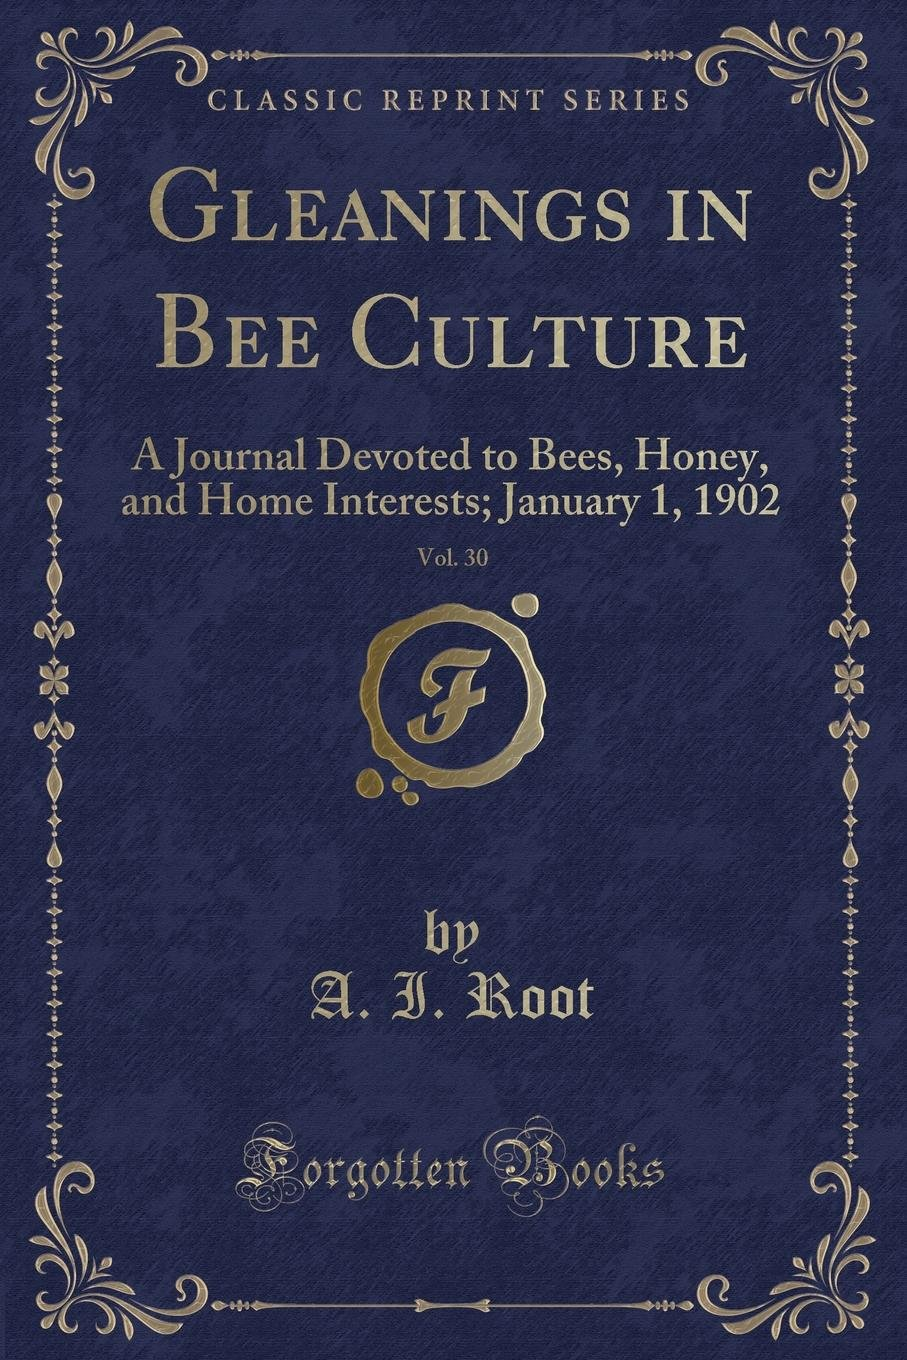 Gleanings in Bee Culture, Vol. 30: A Journal Devoted to Bees, Honey, and Home Interests; January 1, 1902 (Classic Reprint) pdf epub